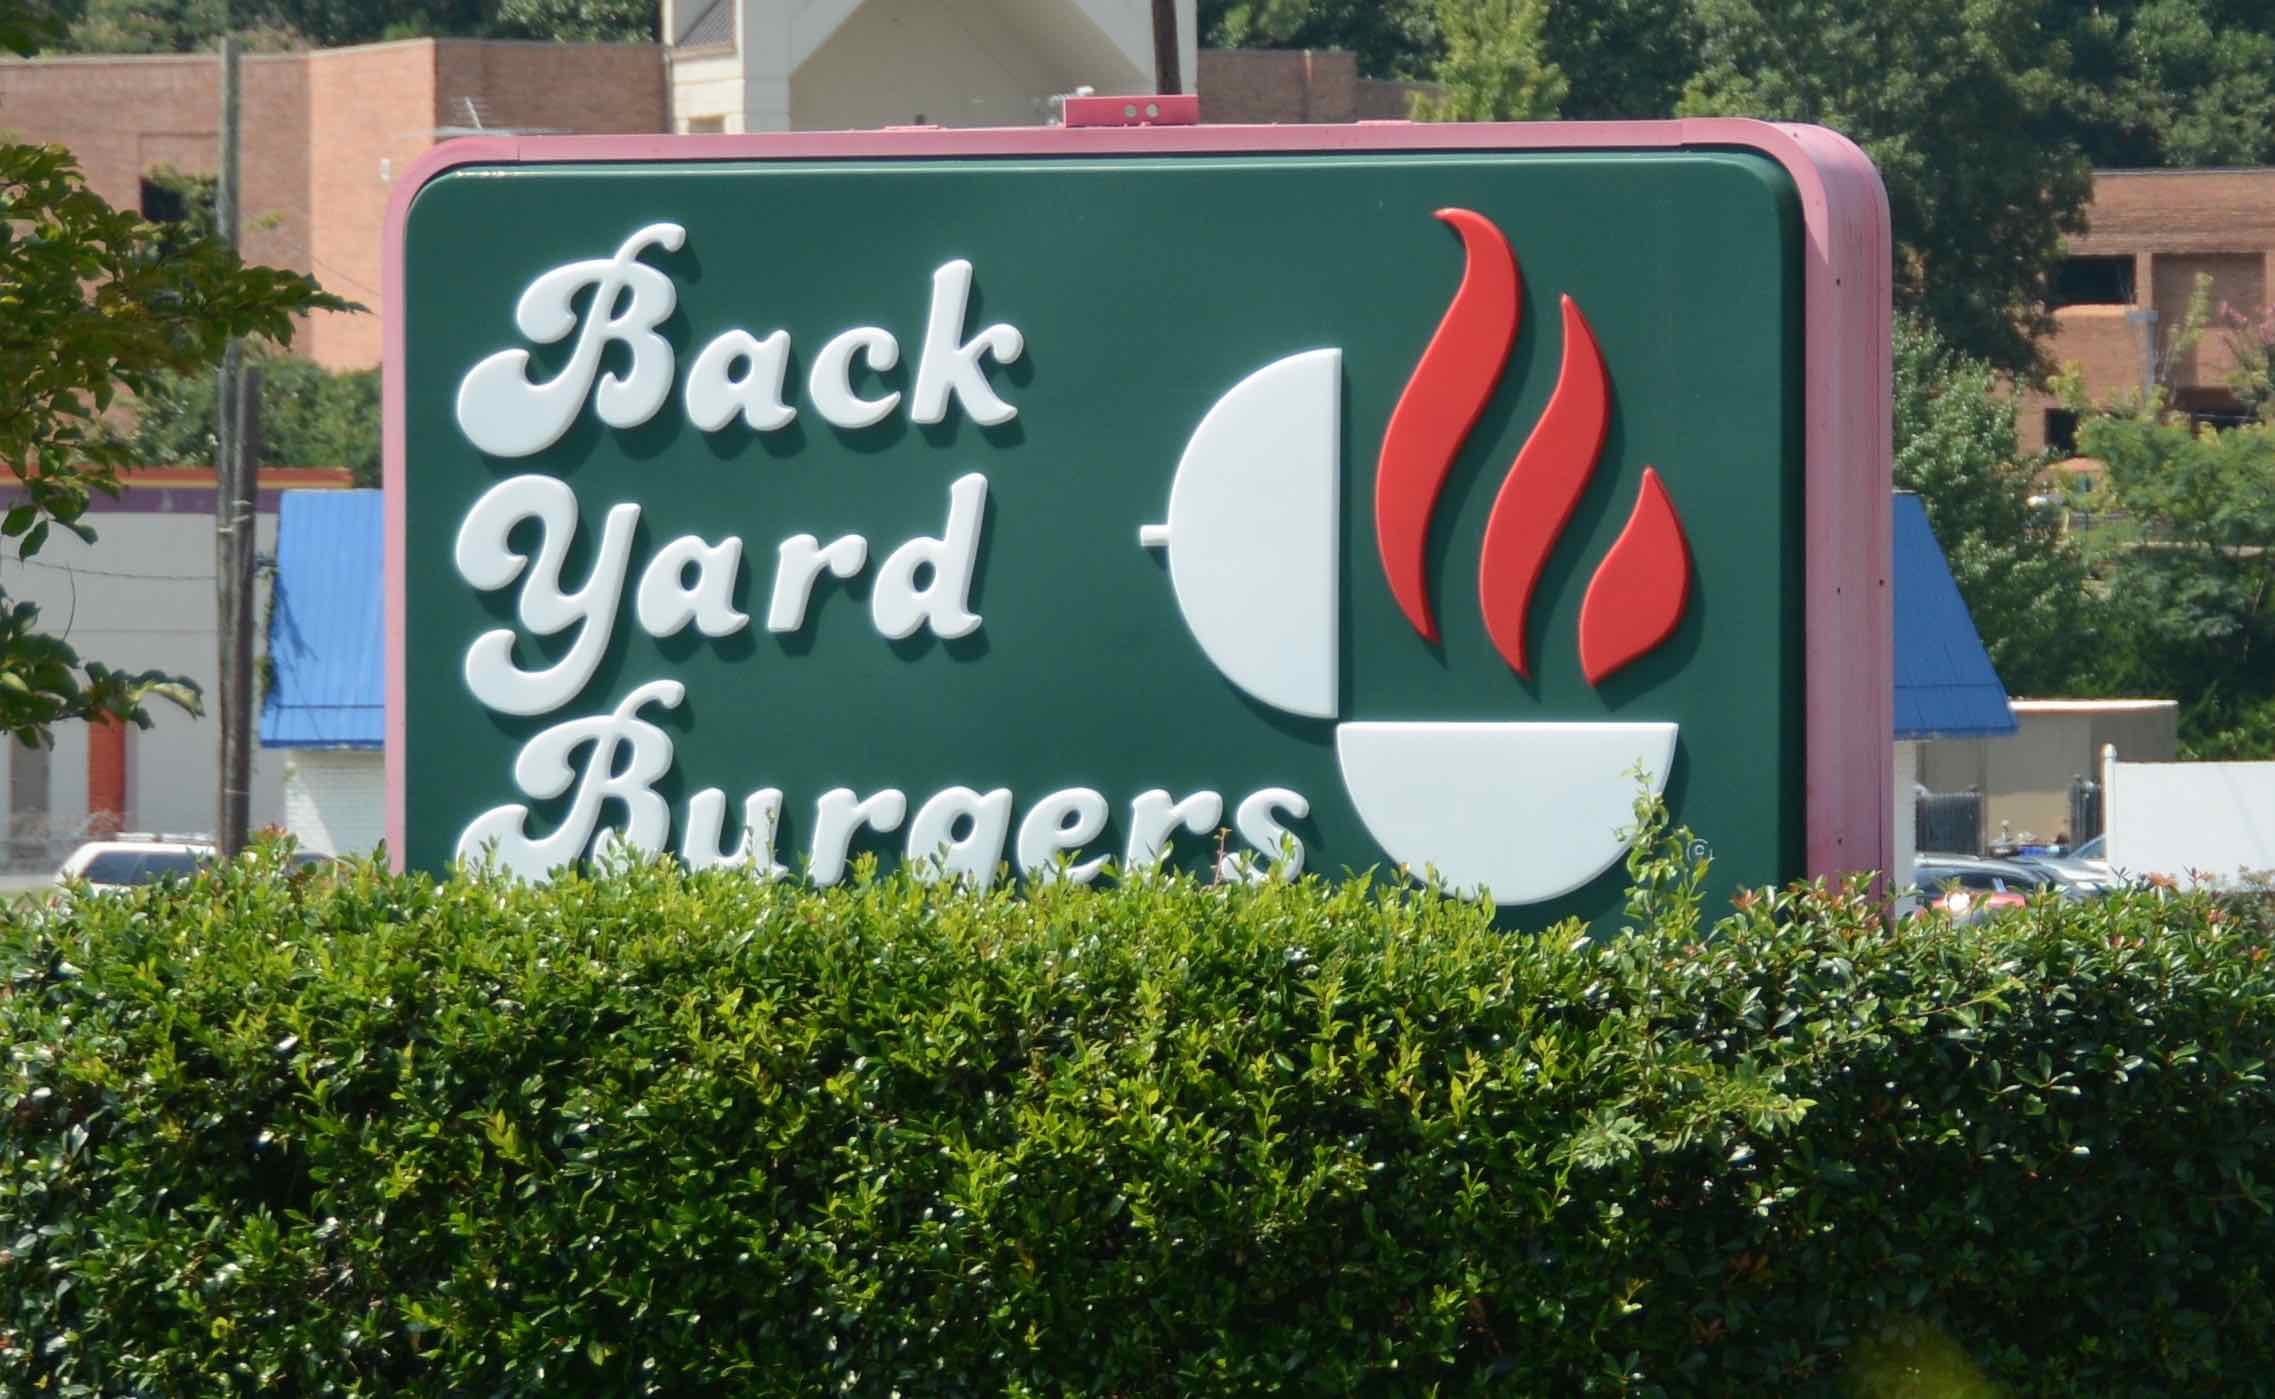 Backyard Burgers plans updates for Hoover location ...